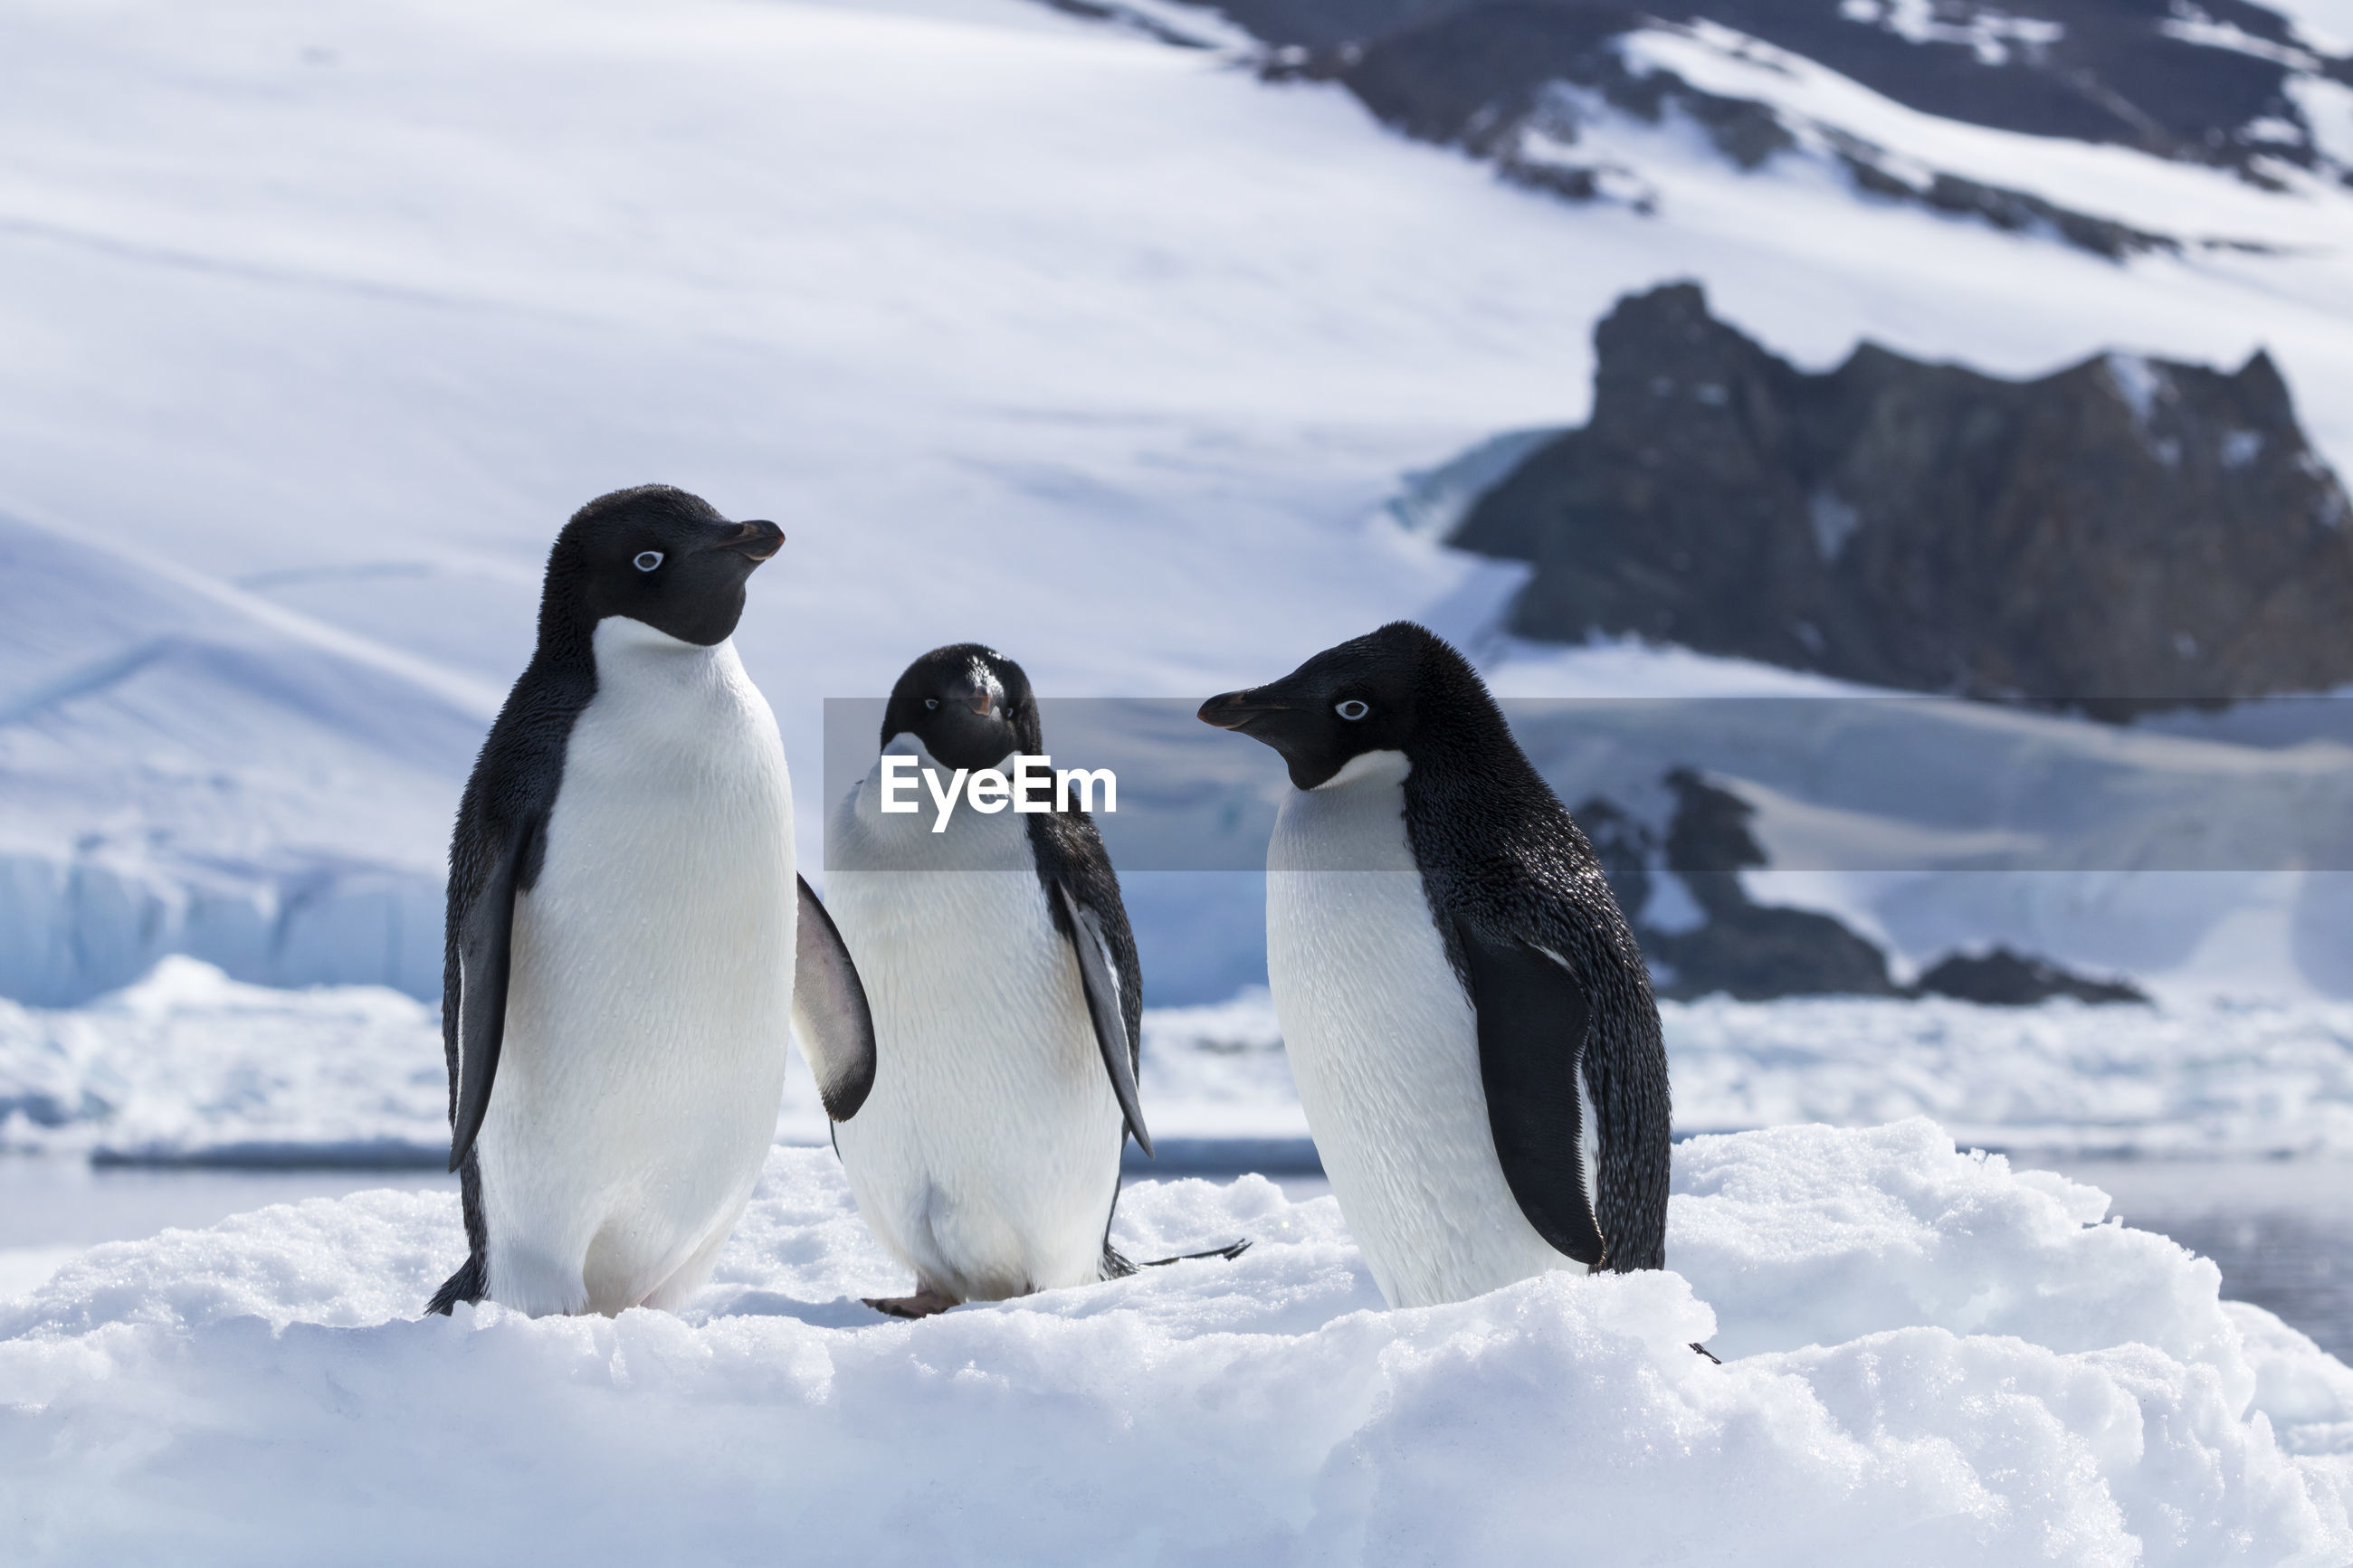 HIGH ANGLE VIEW OF PENGUINS ON SNOW